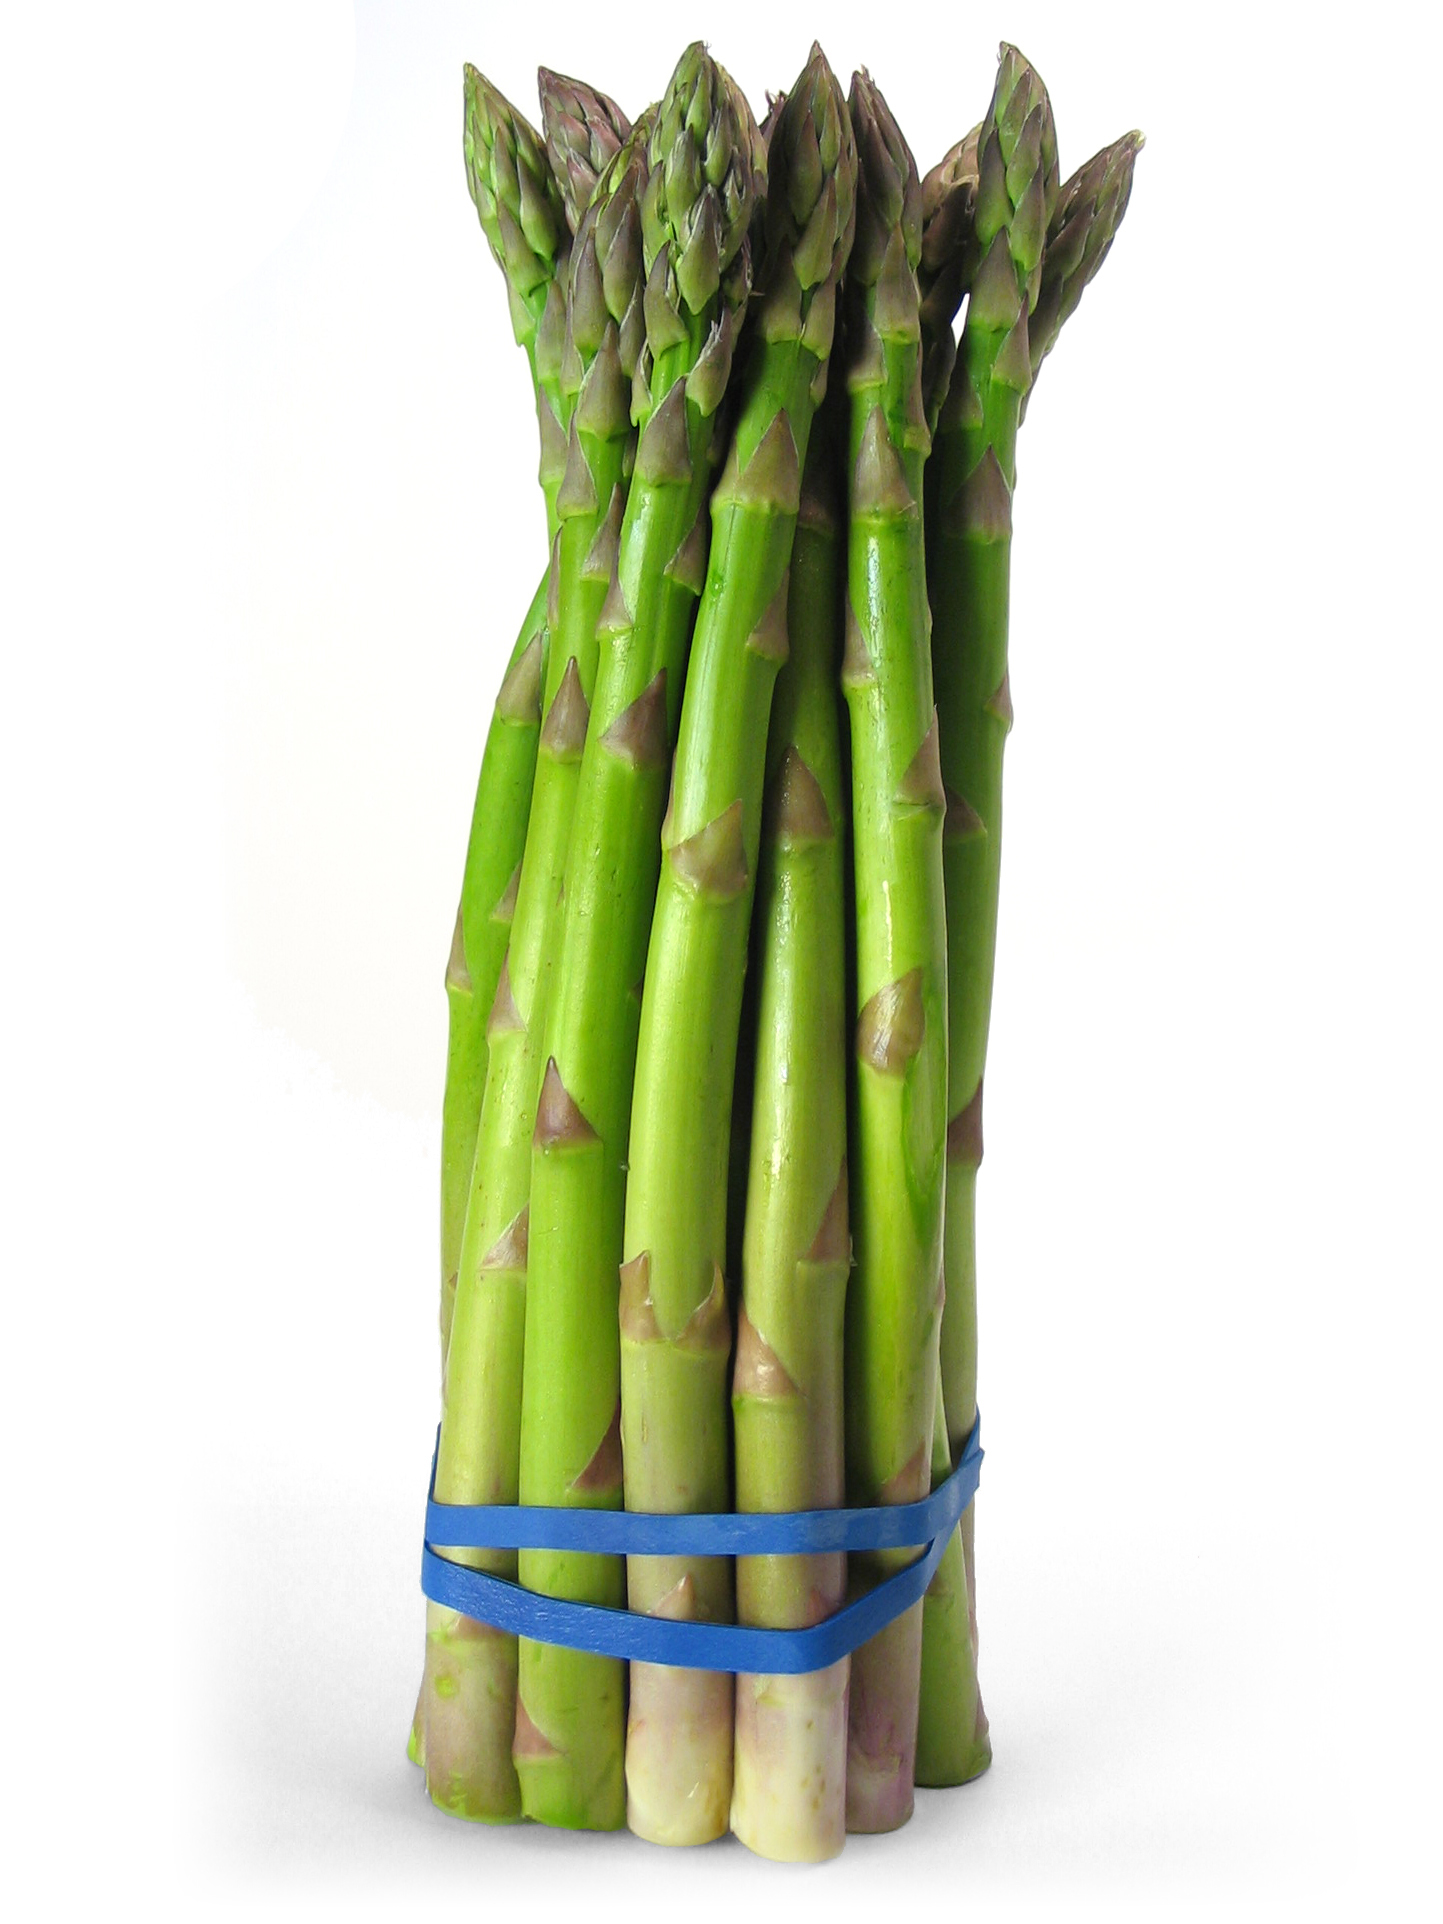 How to make an asparagus vase